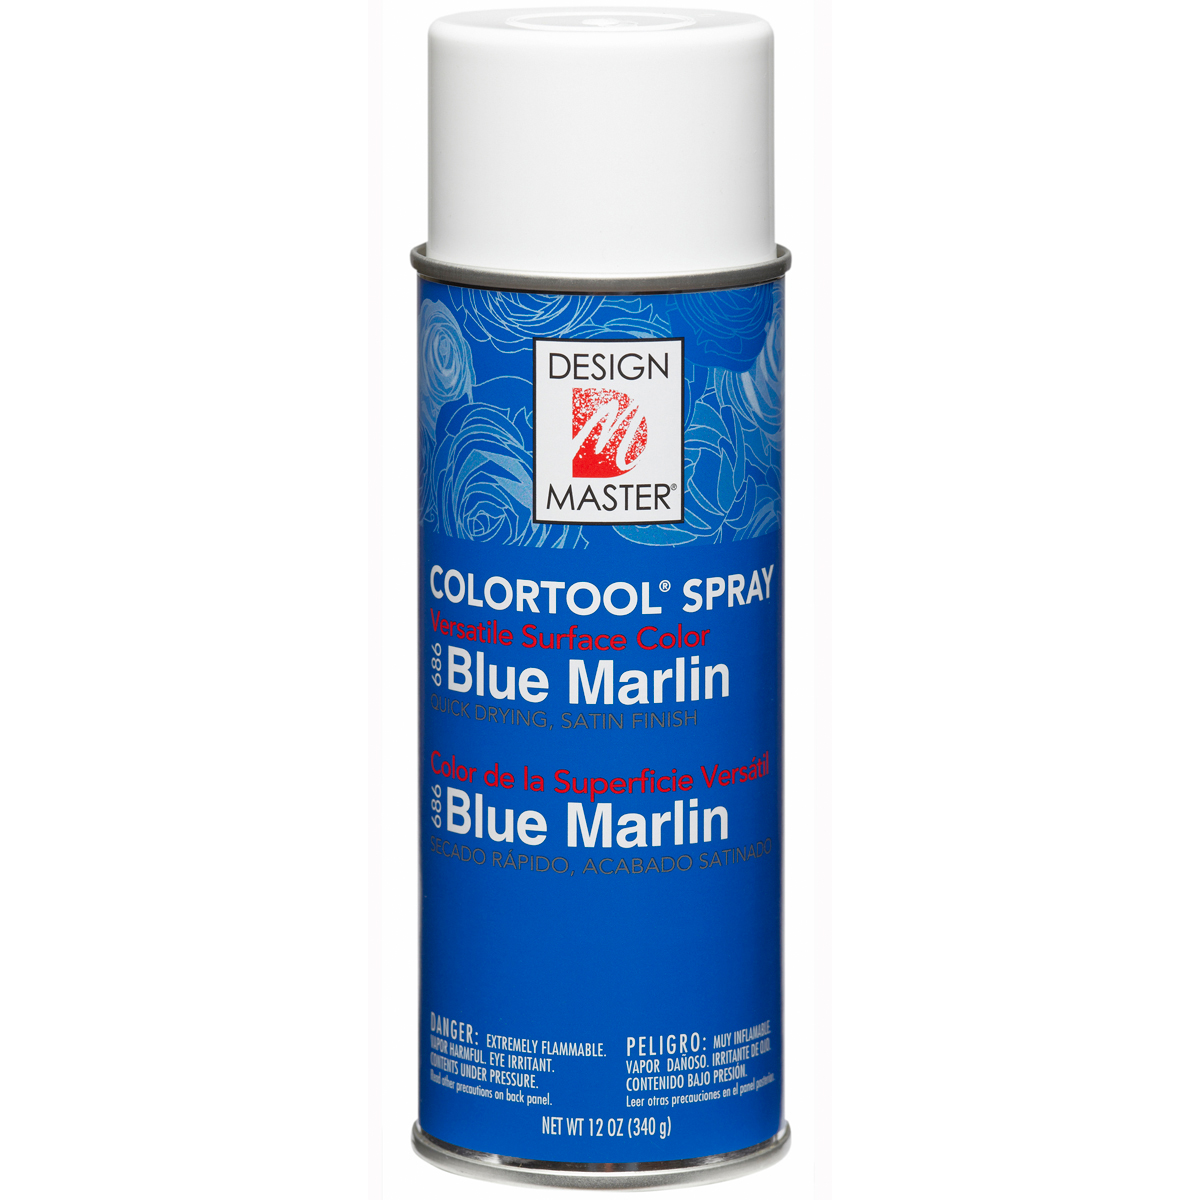 Design Master Colortool Spray Paint 12oz-Blue Marlin